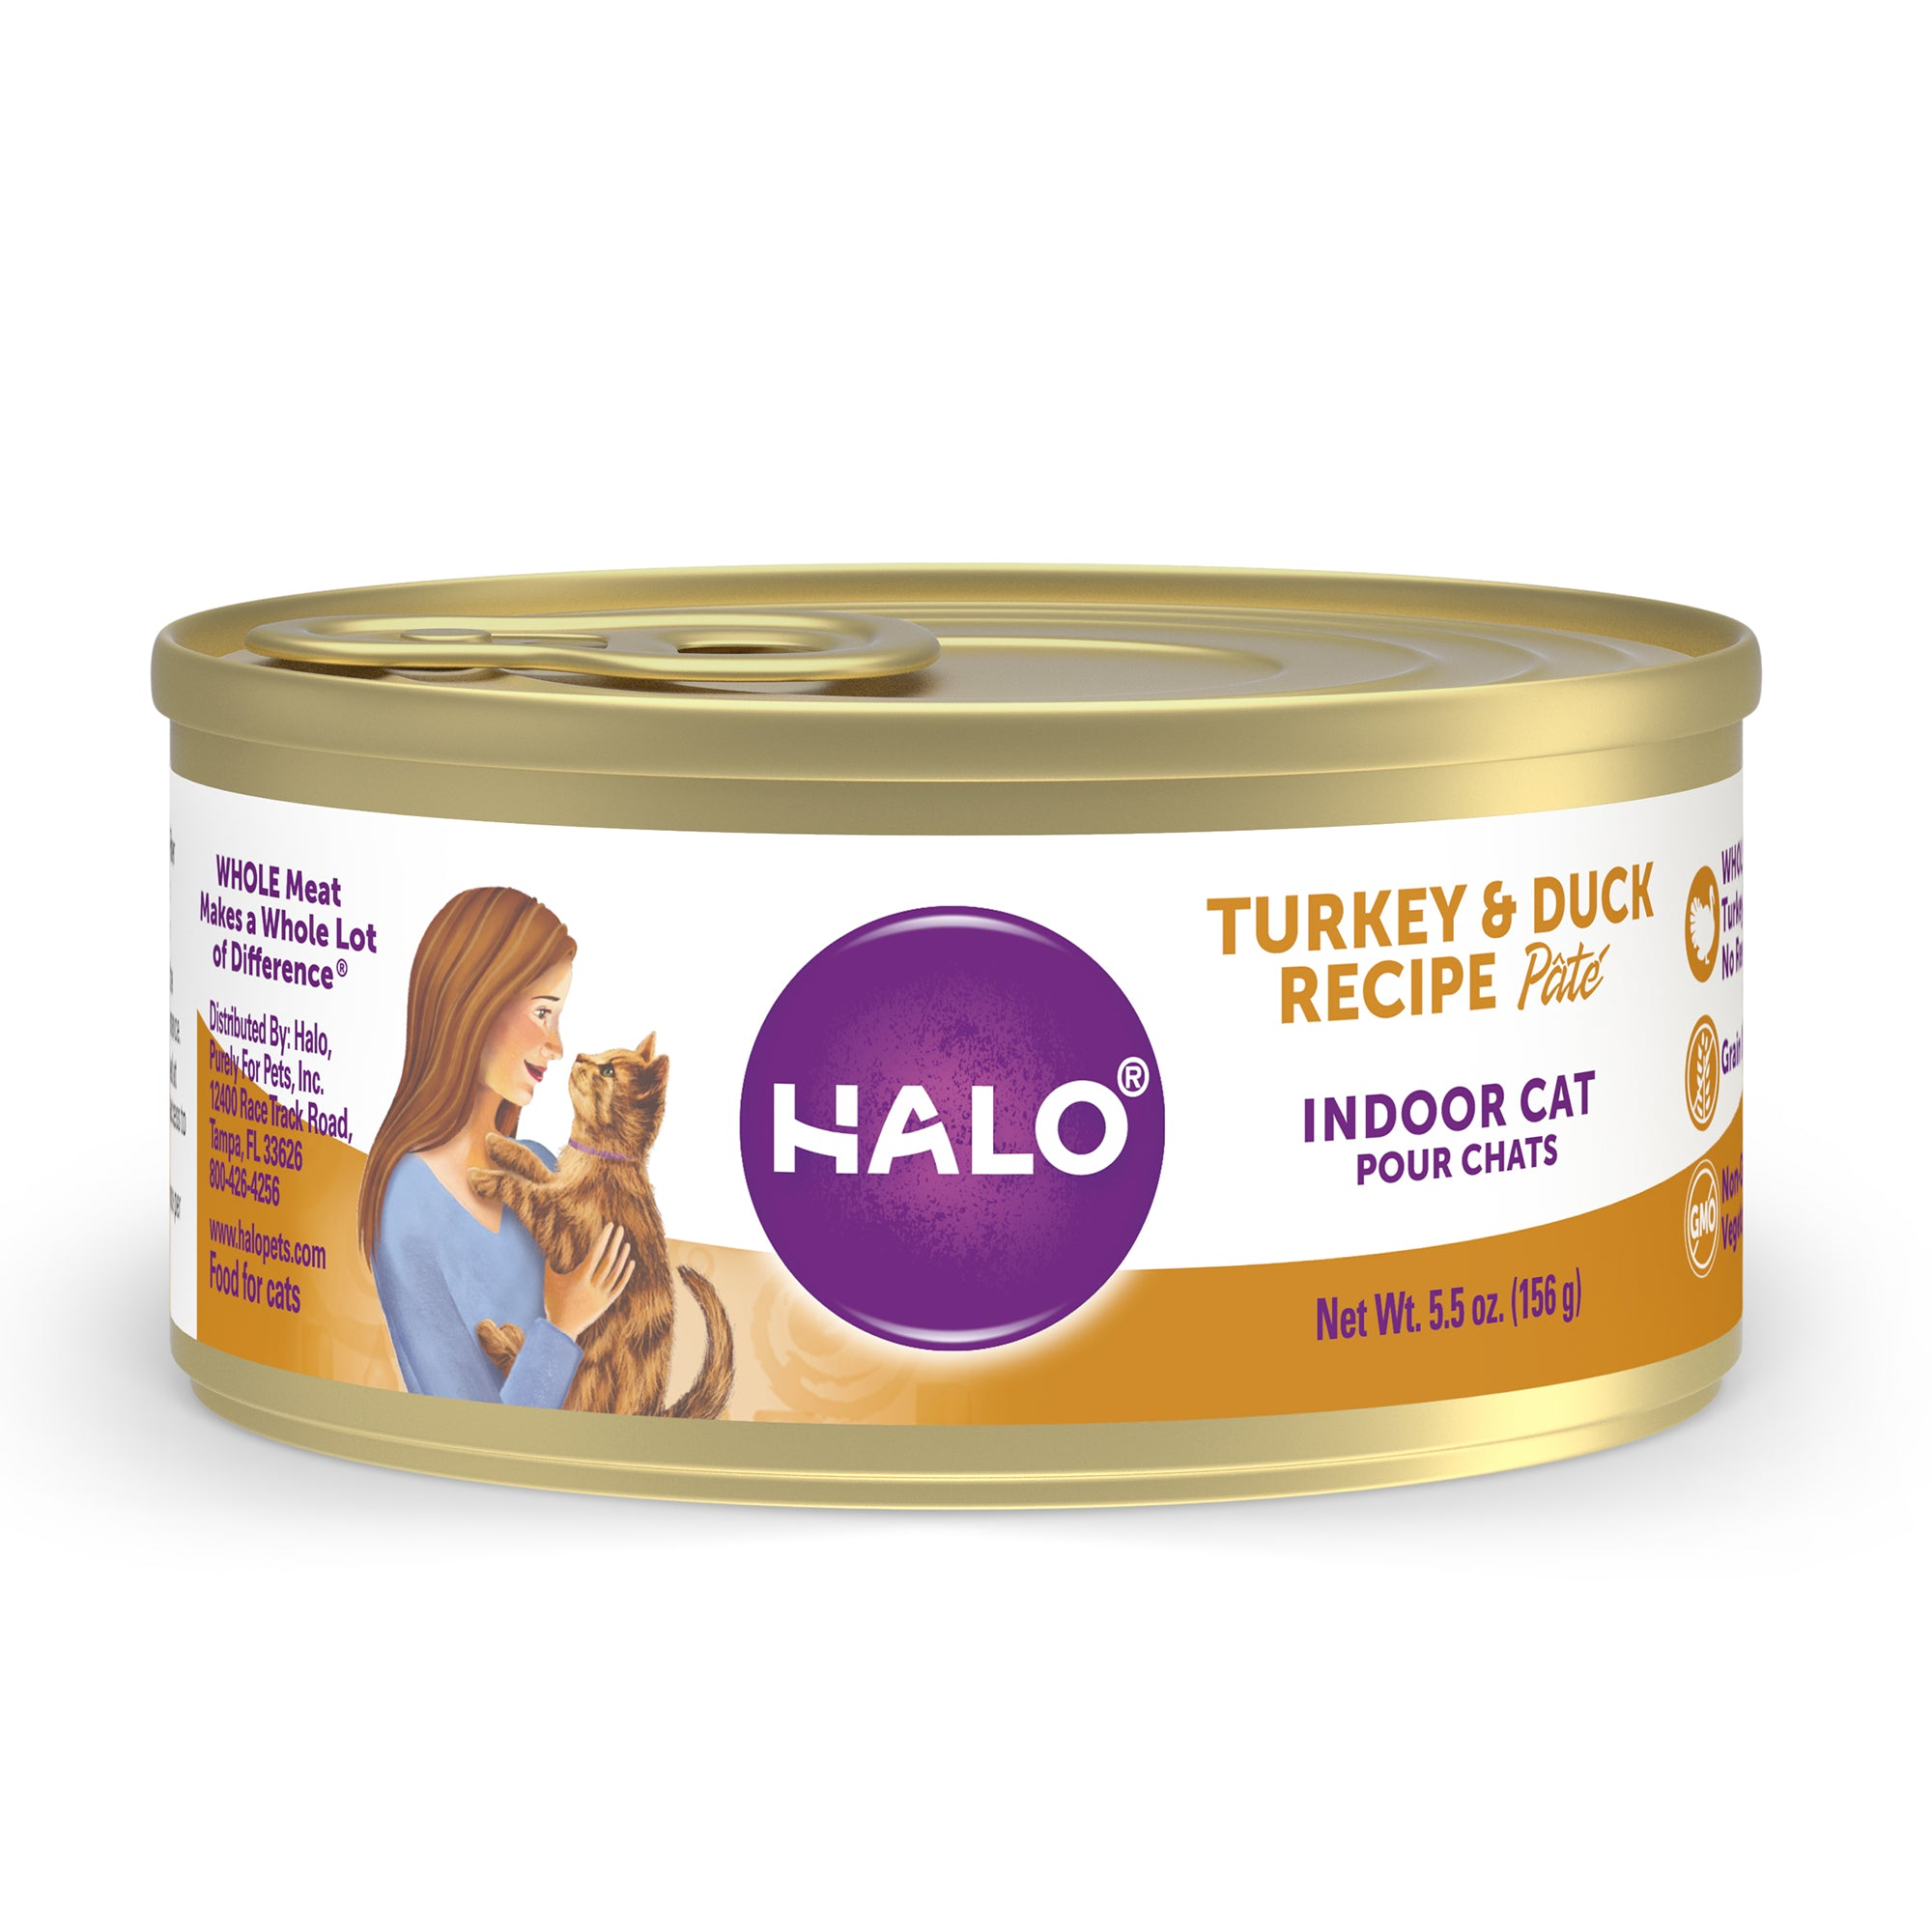 Halo Indoor Cat - Grain Free Turkey & Duck Recipe Pâté